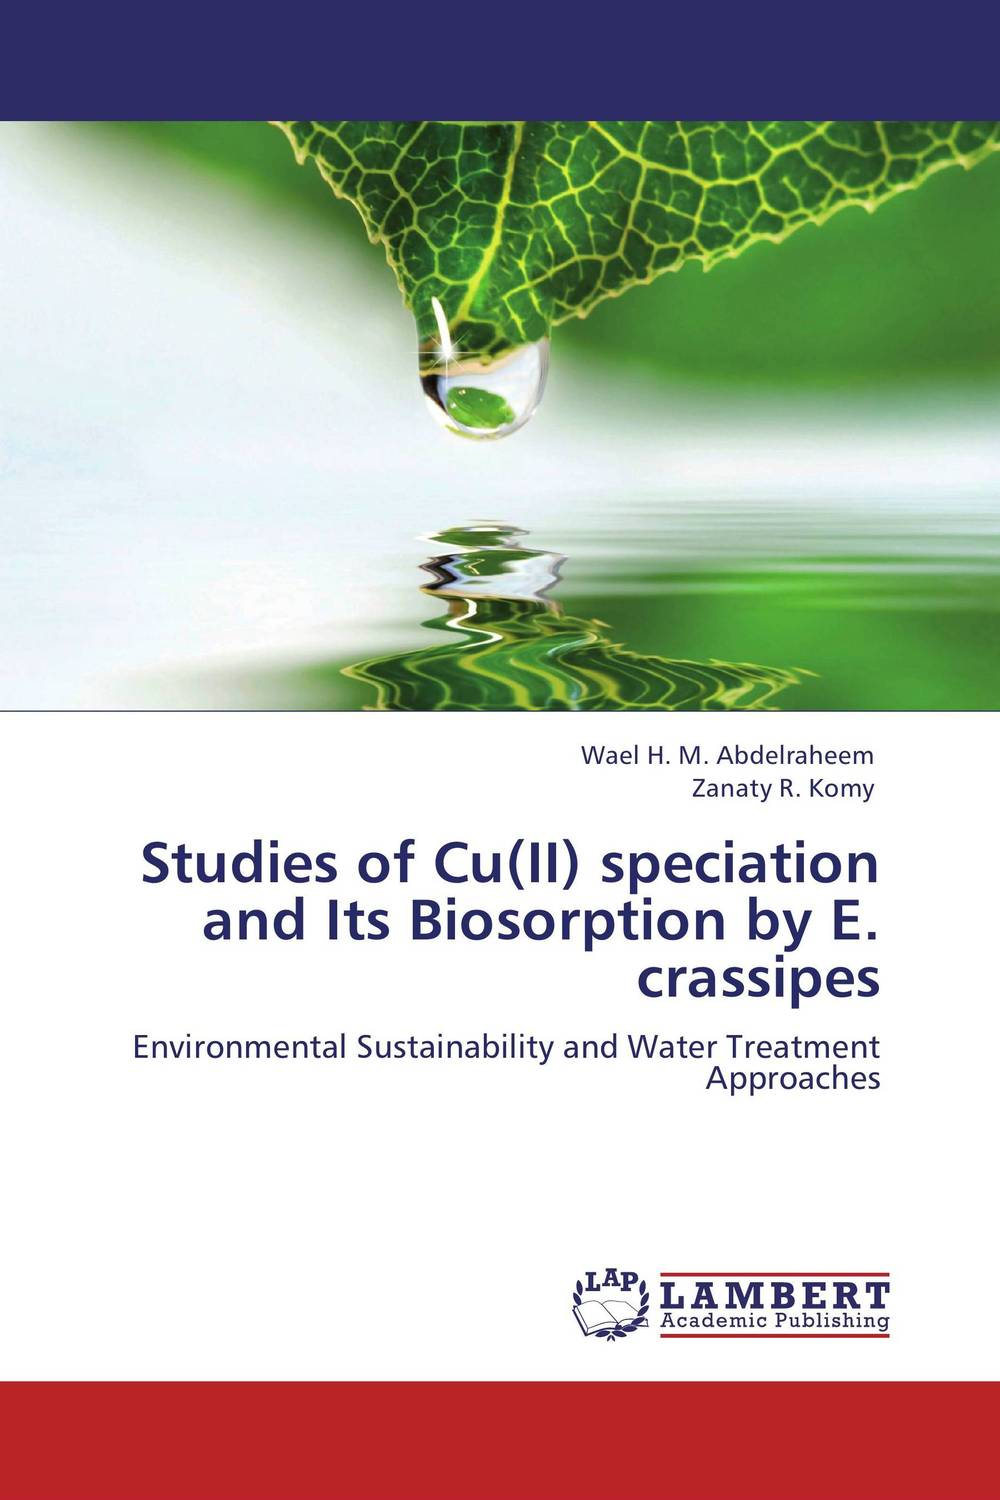 Studies of Cu(II) speciation and Its Biosorption by E. crassipes rakesh kumar amrit pal singh and sangeeta obrai computational and solution studies of cu ii ions with podands